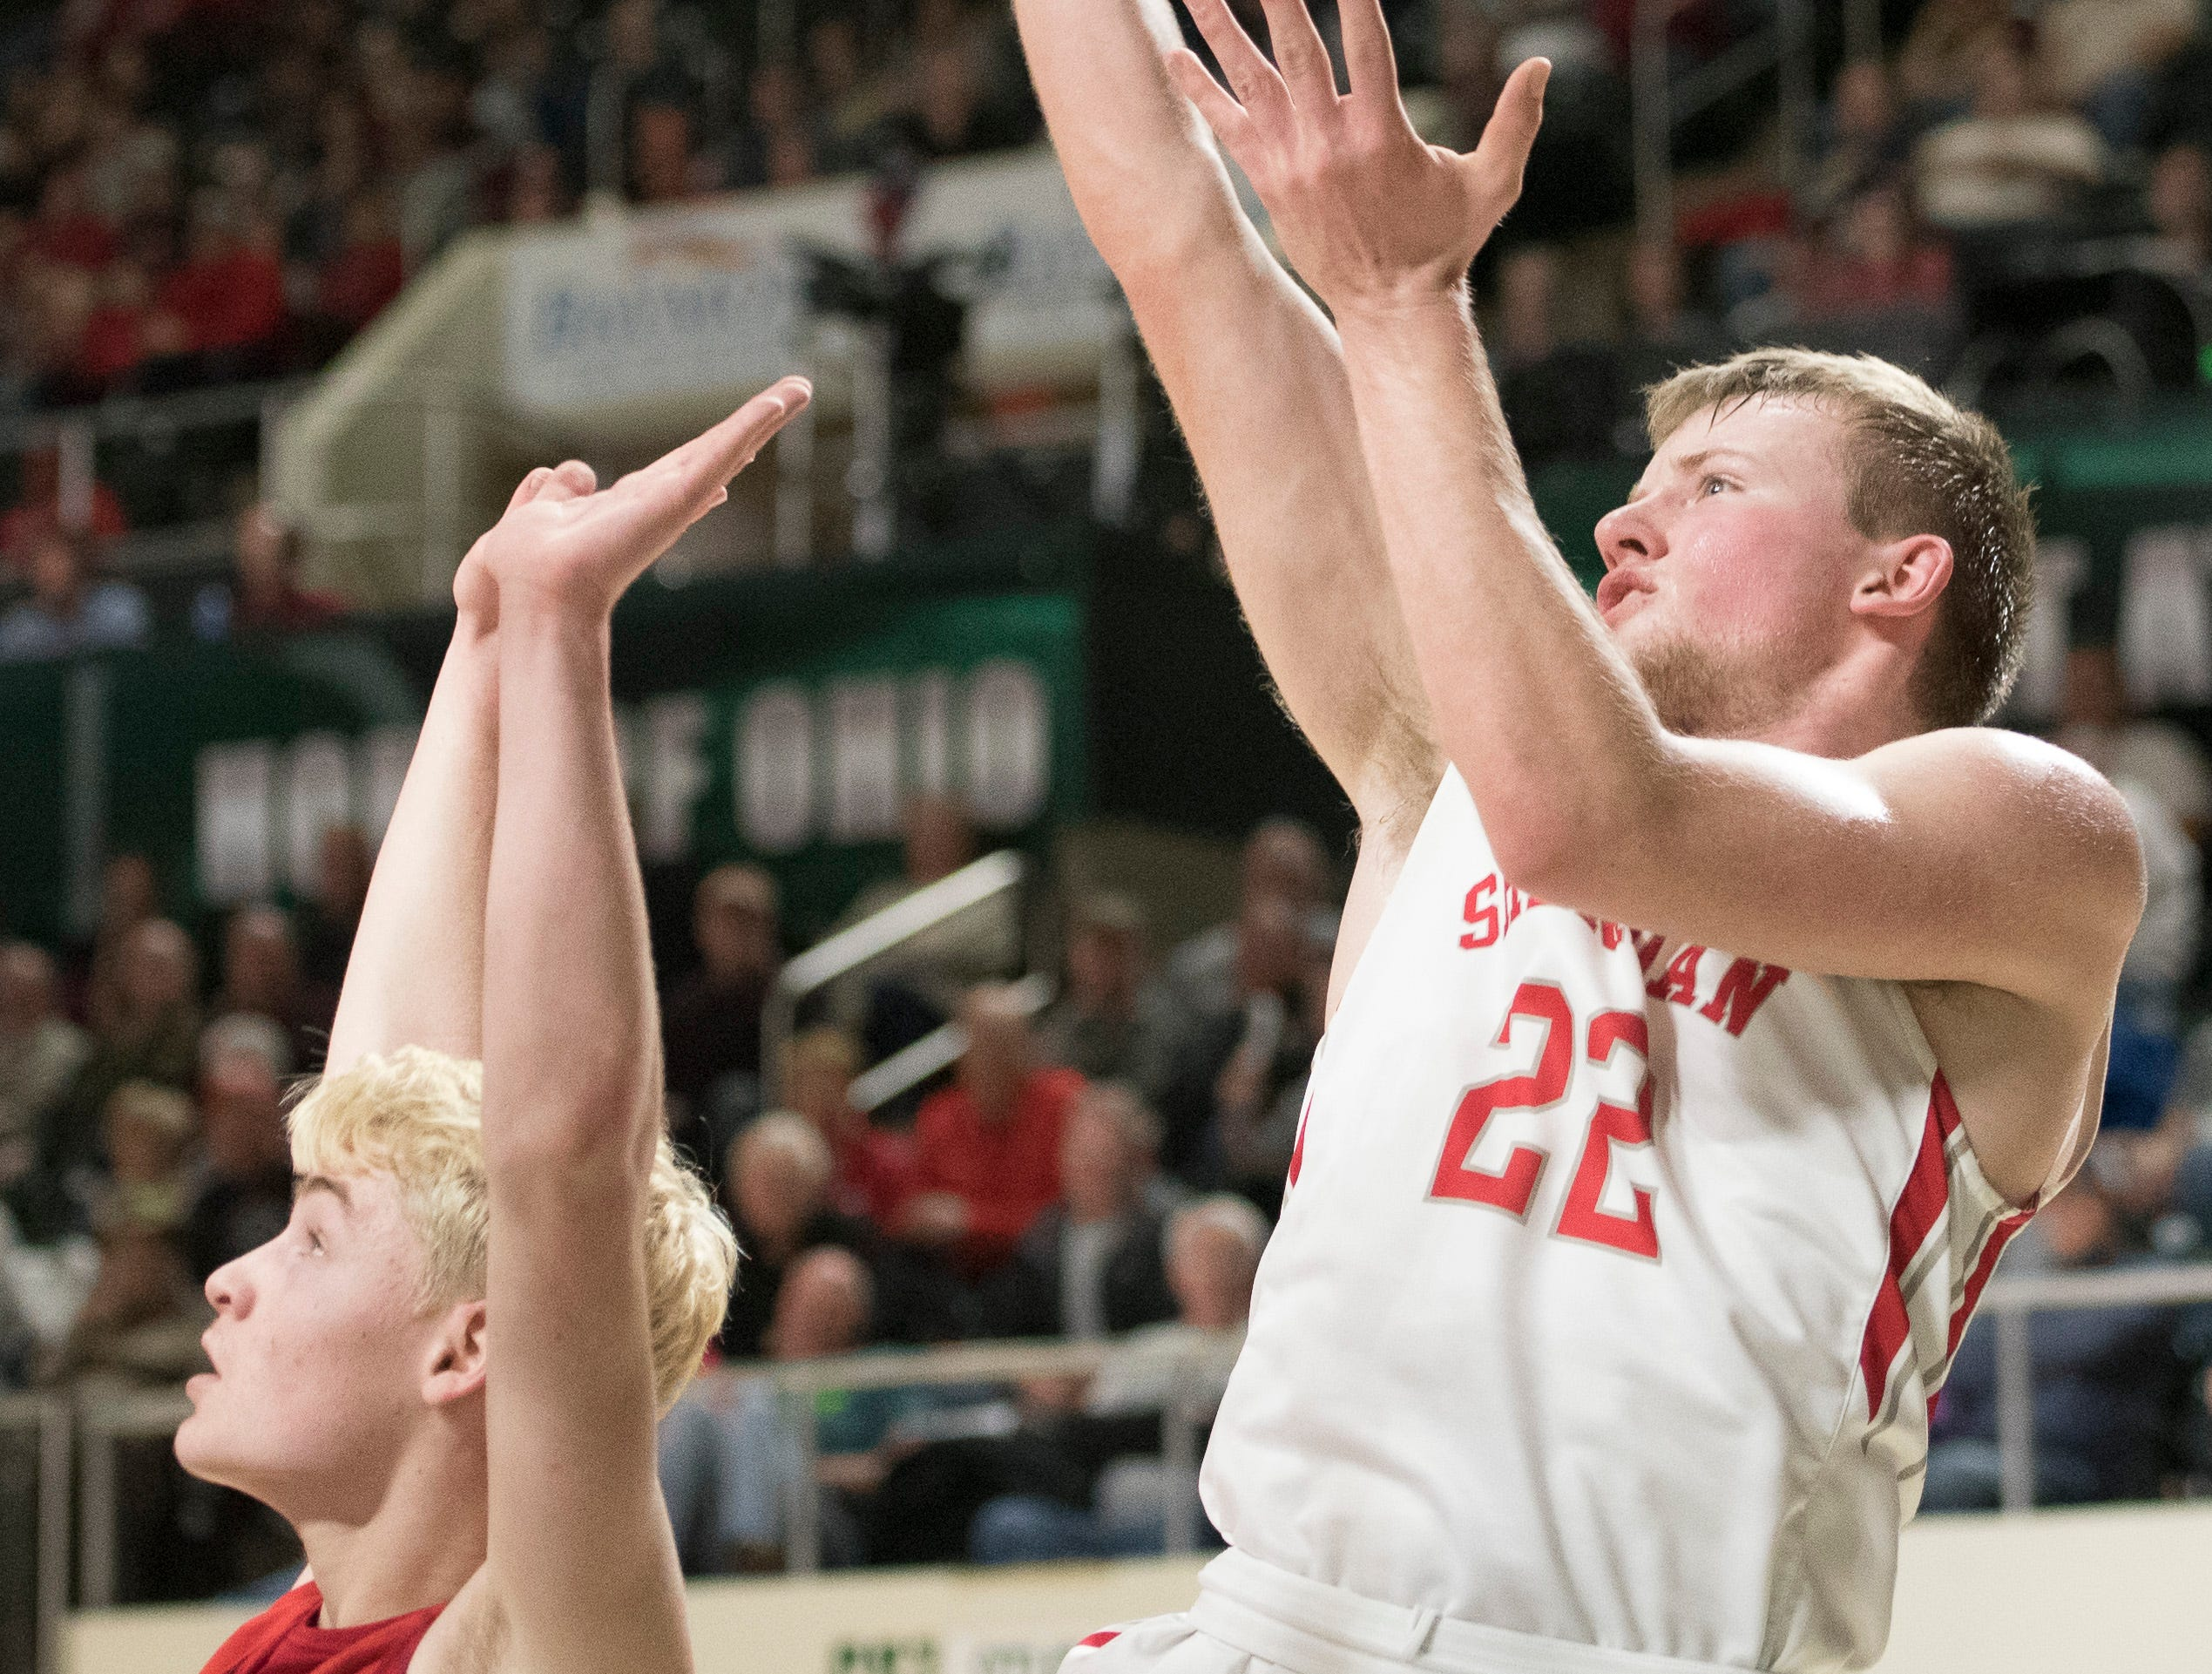 Sheridan defeated Jackson 59-44 Sunday night in a Division II district final game at Ohio University's Convocation Center in Athens, Ohio, on March 10, 2019.